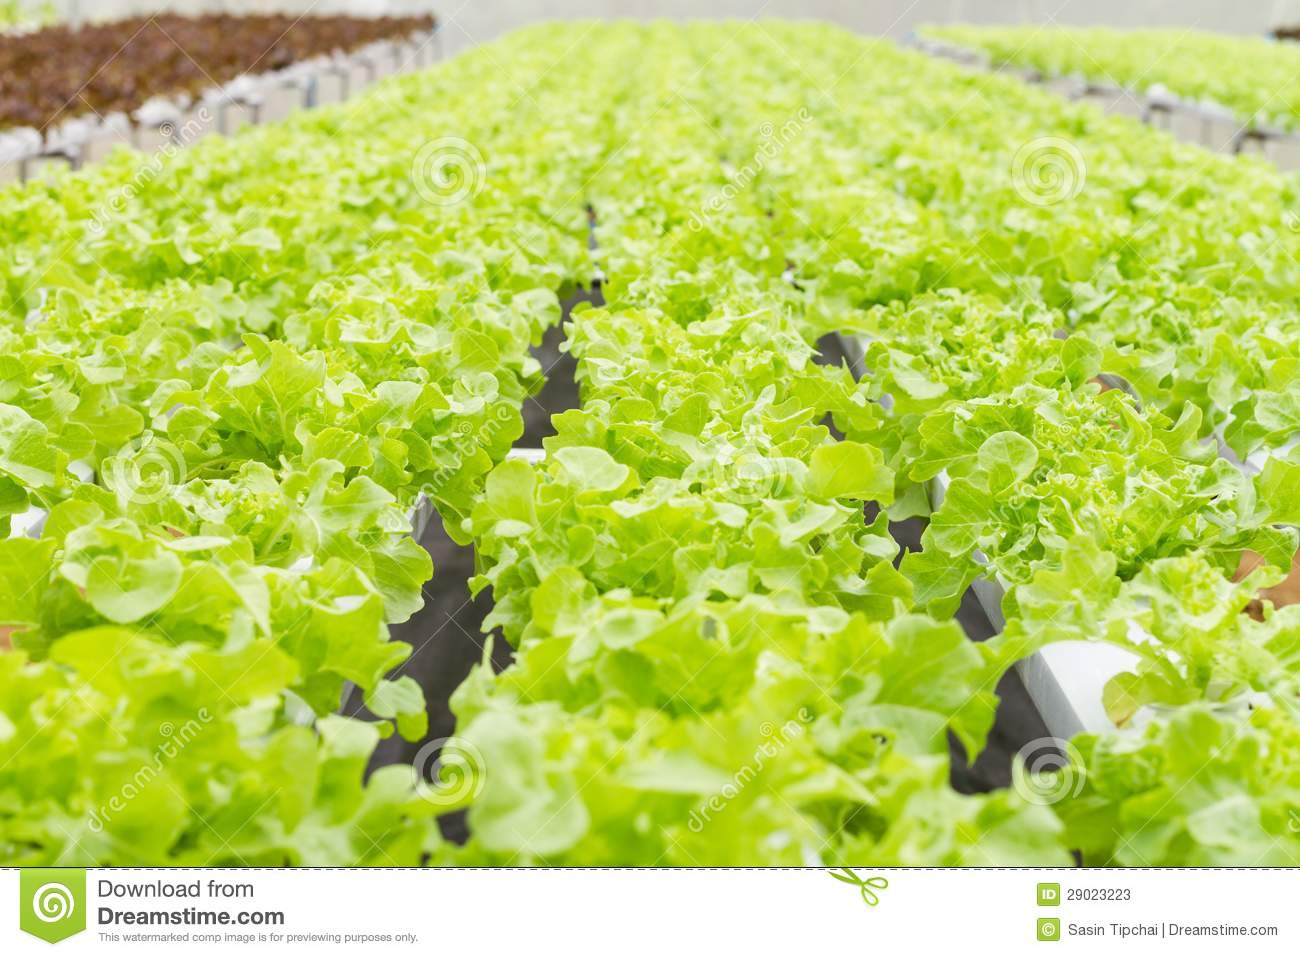 Vegetable farm business plan - How To Start Organic Farming In India